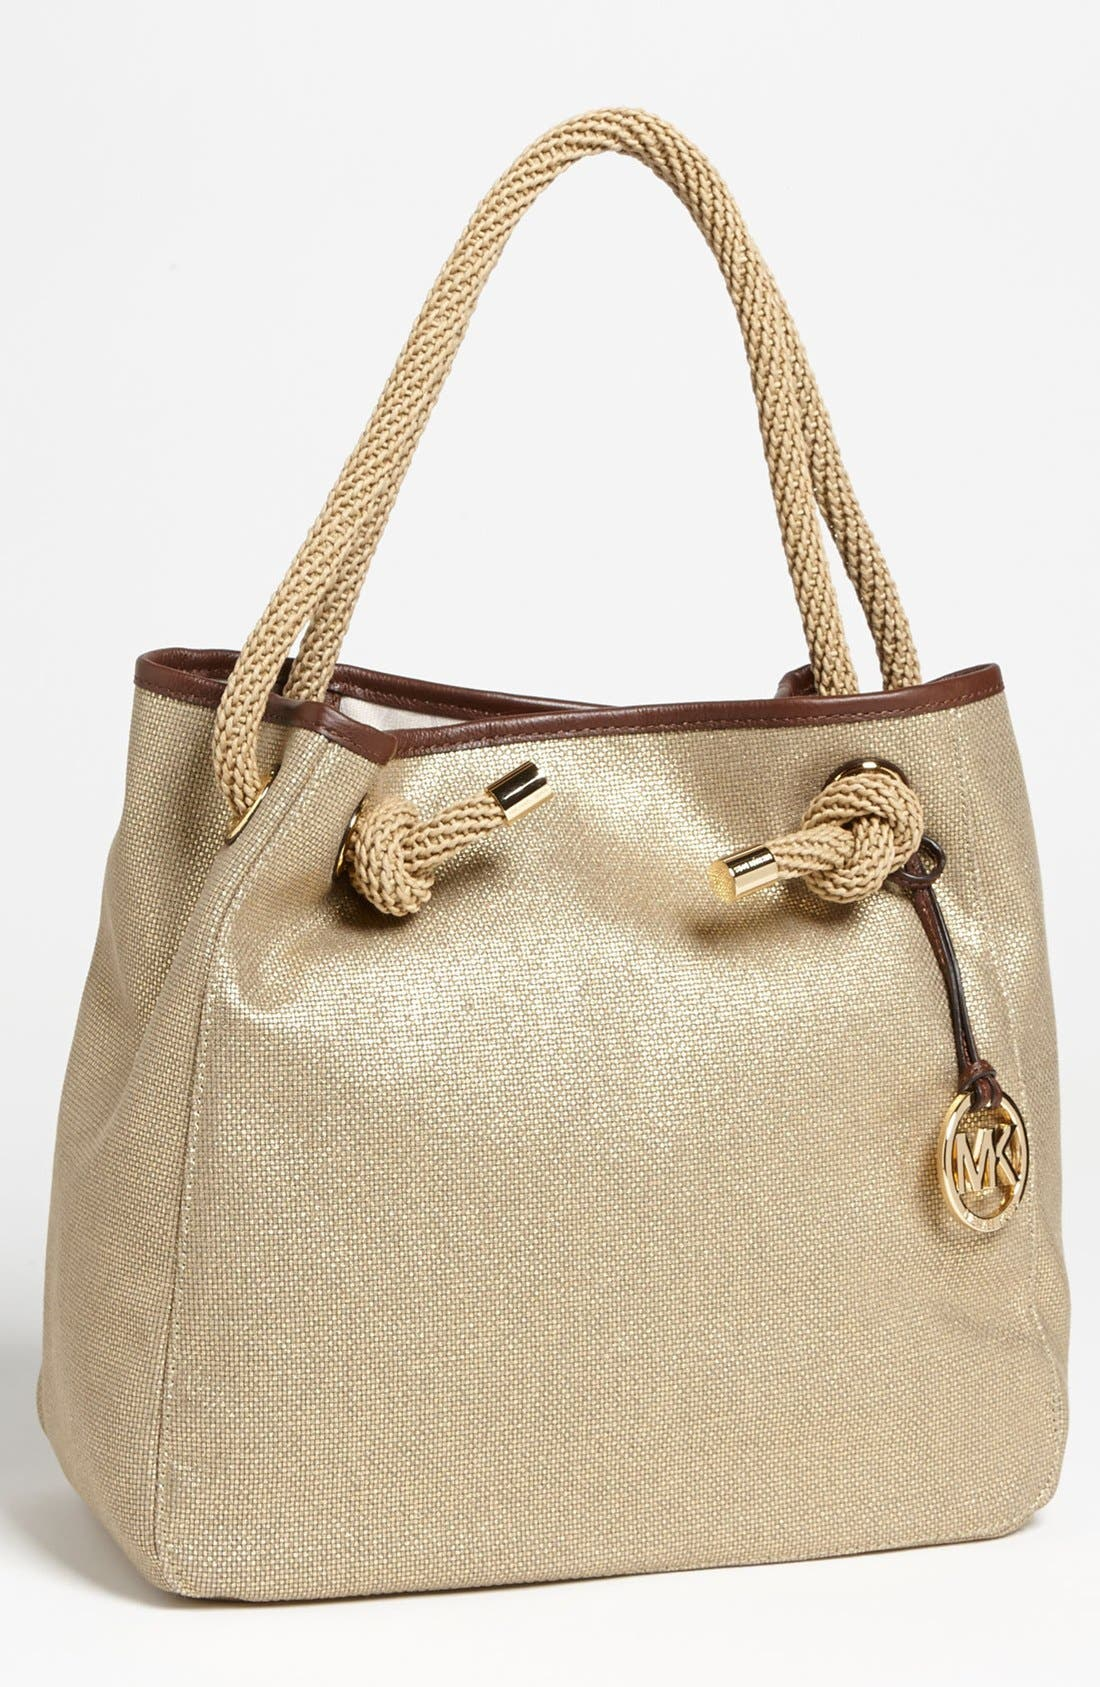 Alternate Image 1 Selected - MICHAEL Michael Kors 'Marina - Large' Tote